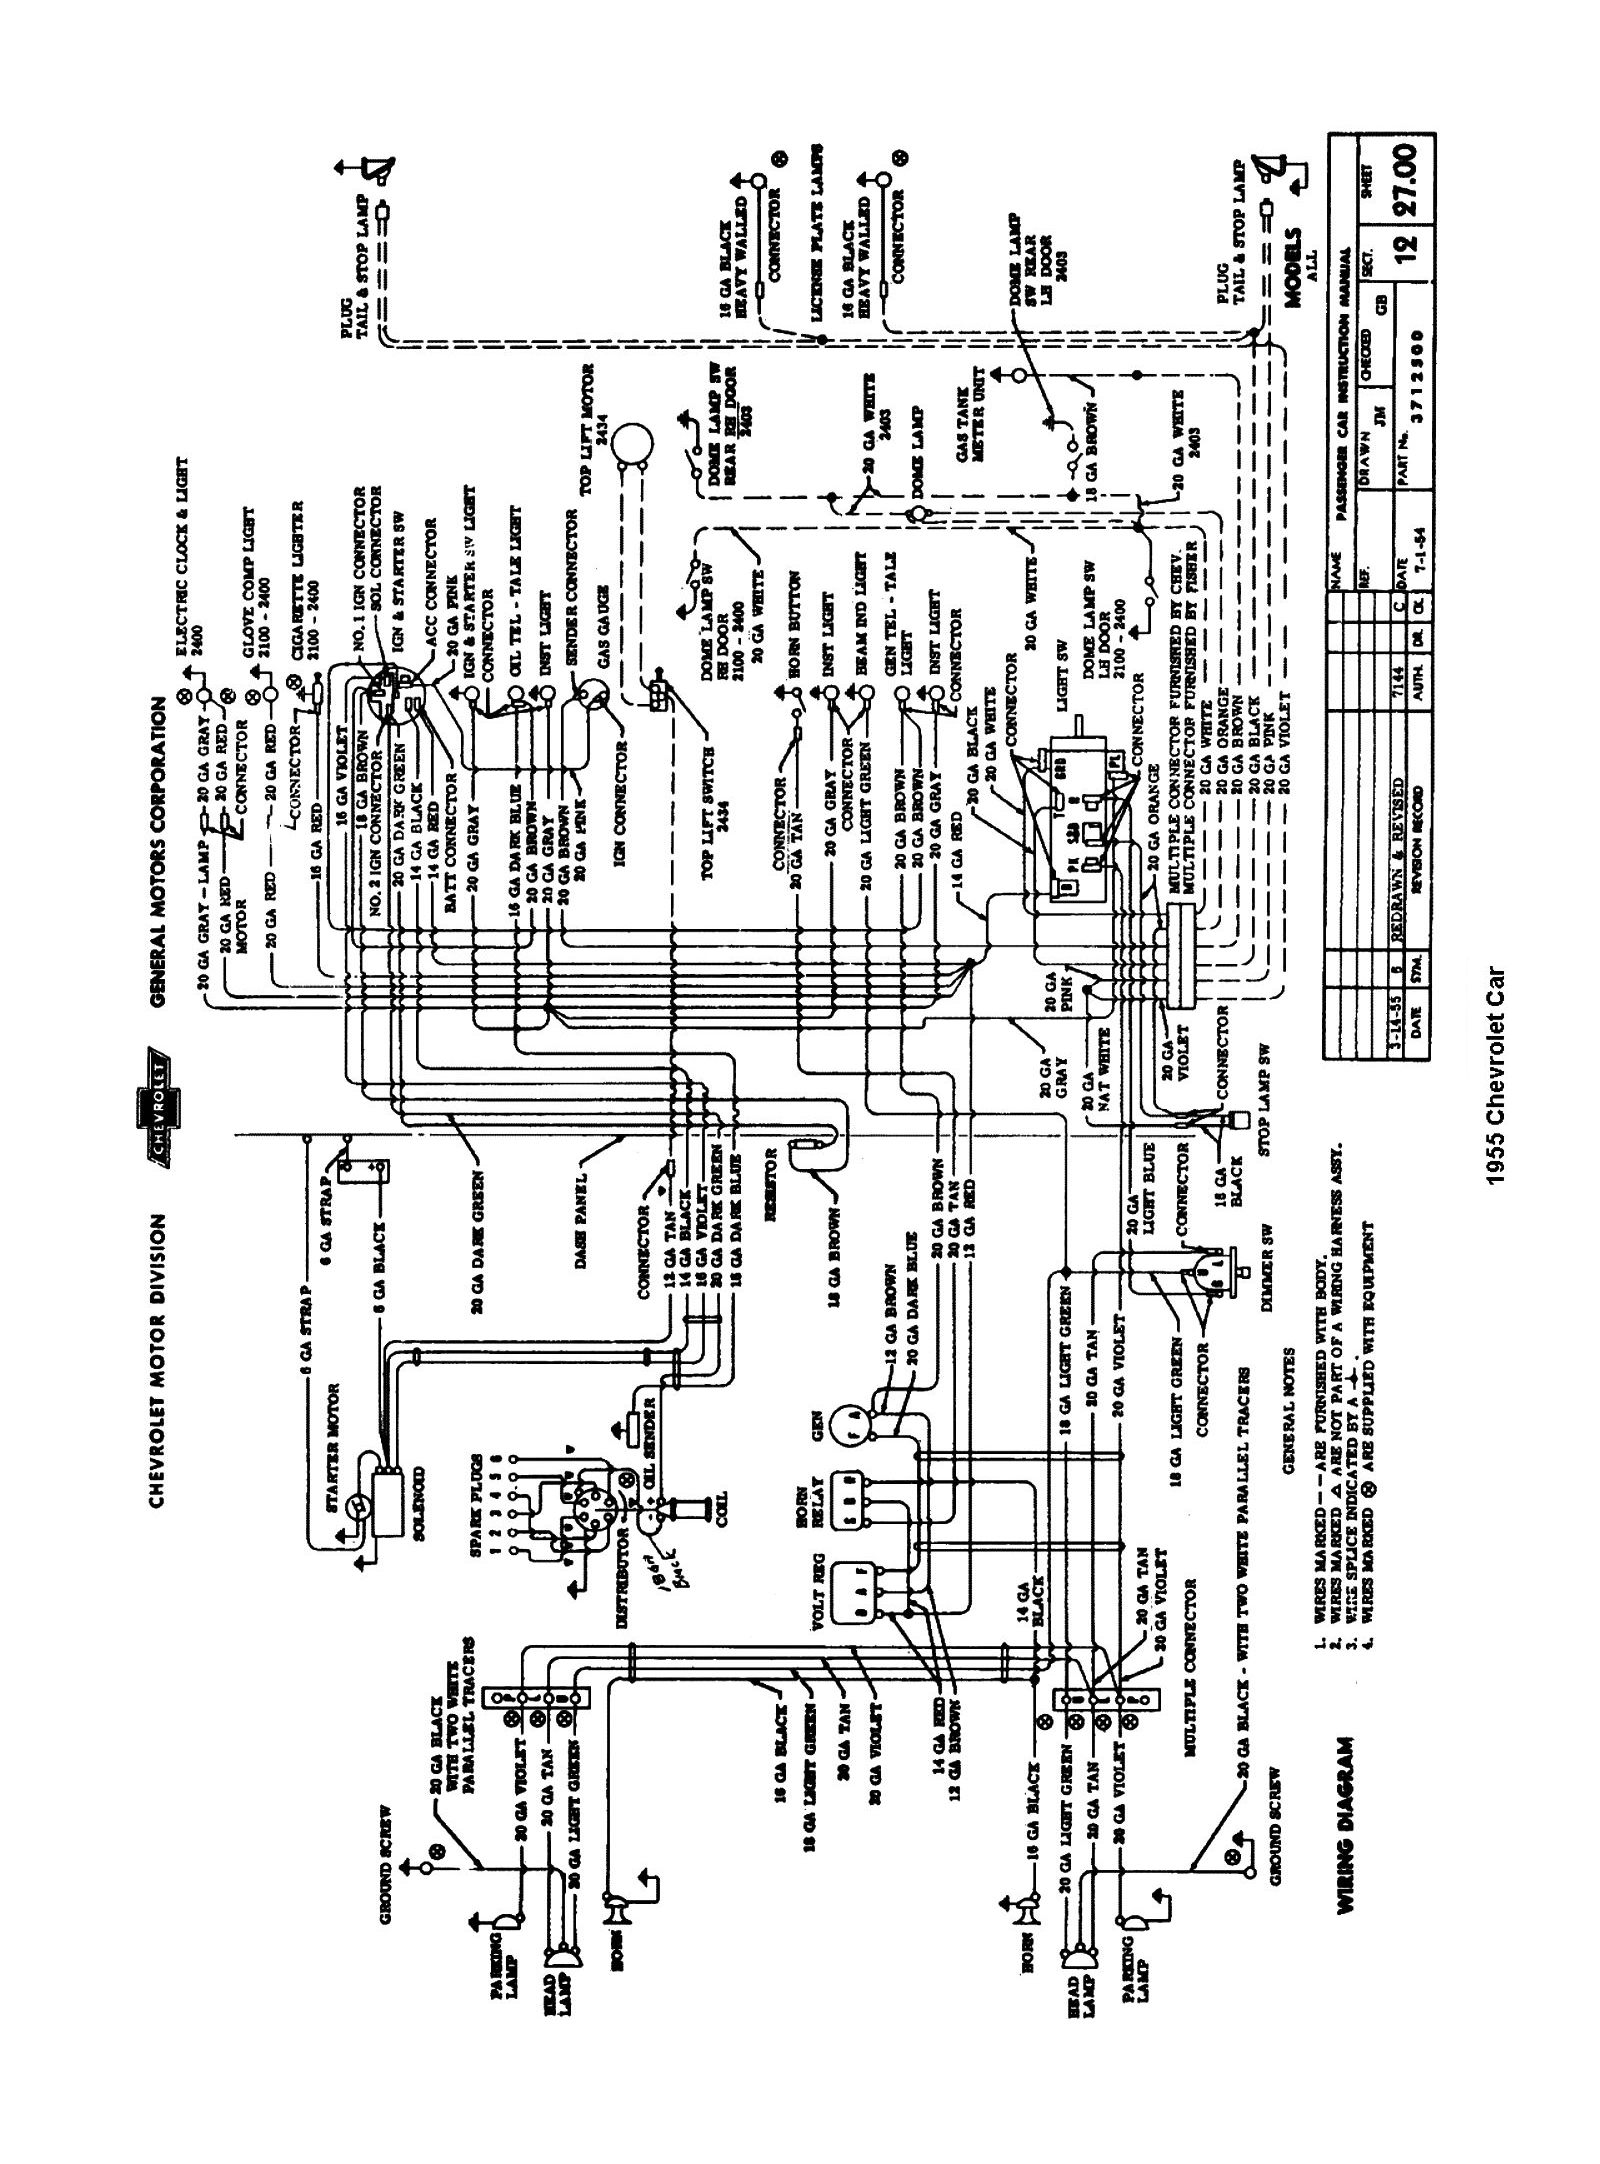 55car1 chevy wiring diagrams GM Factory Wiring Diagram at honlapkeszites.co